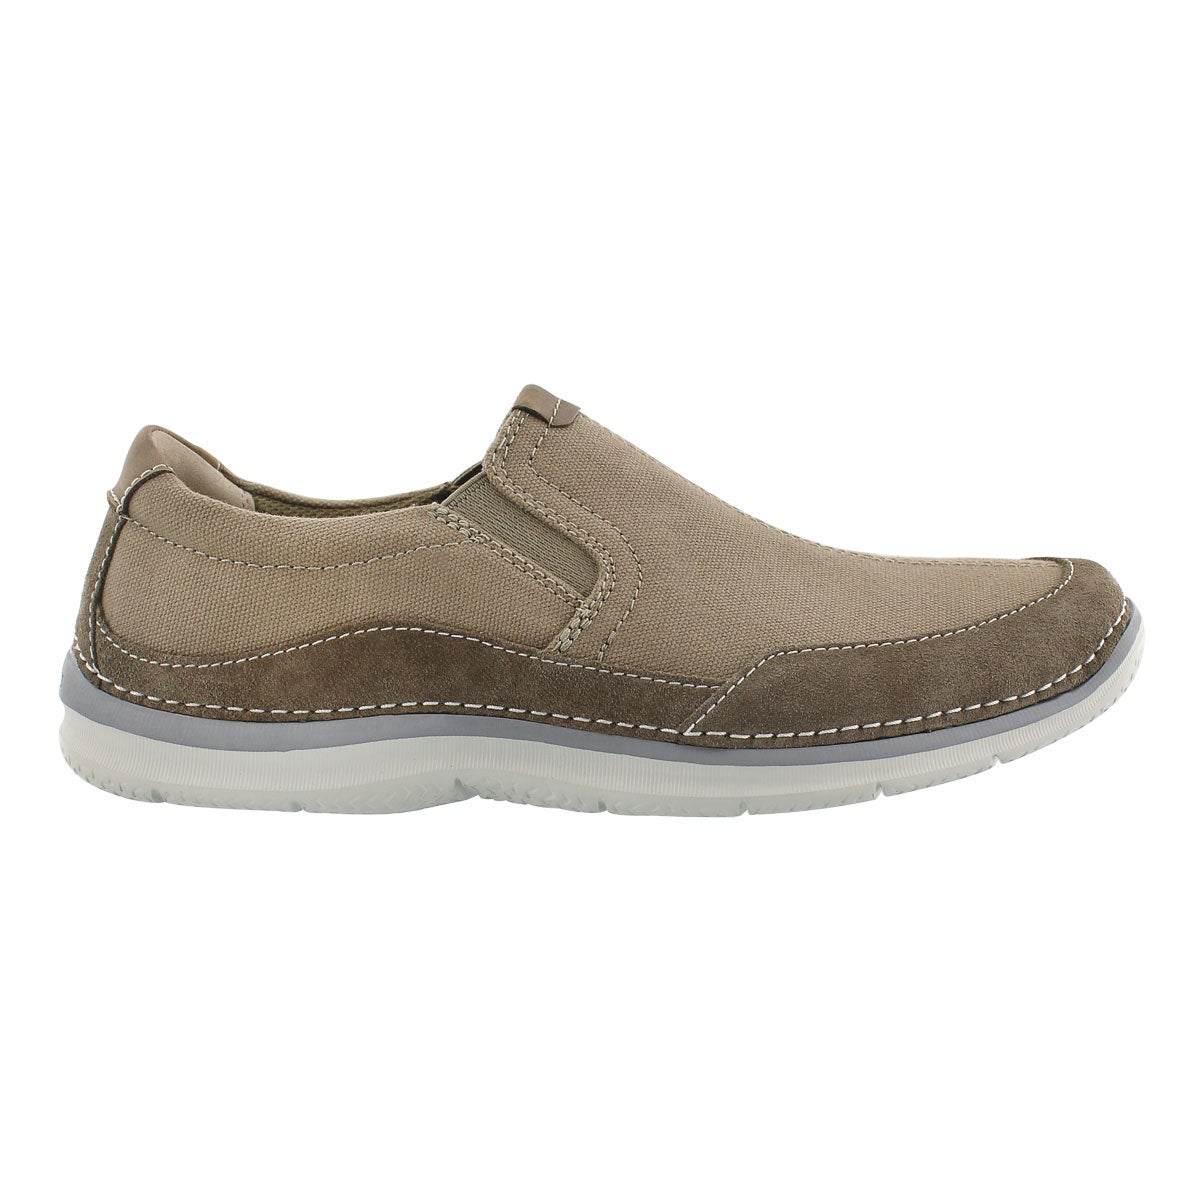 Mns Ripton Free olive slipon casual shoe